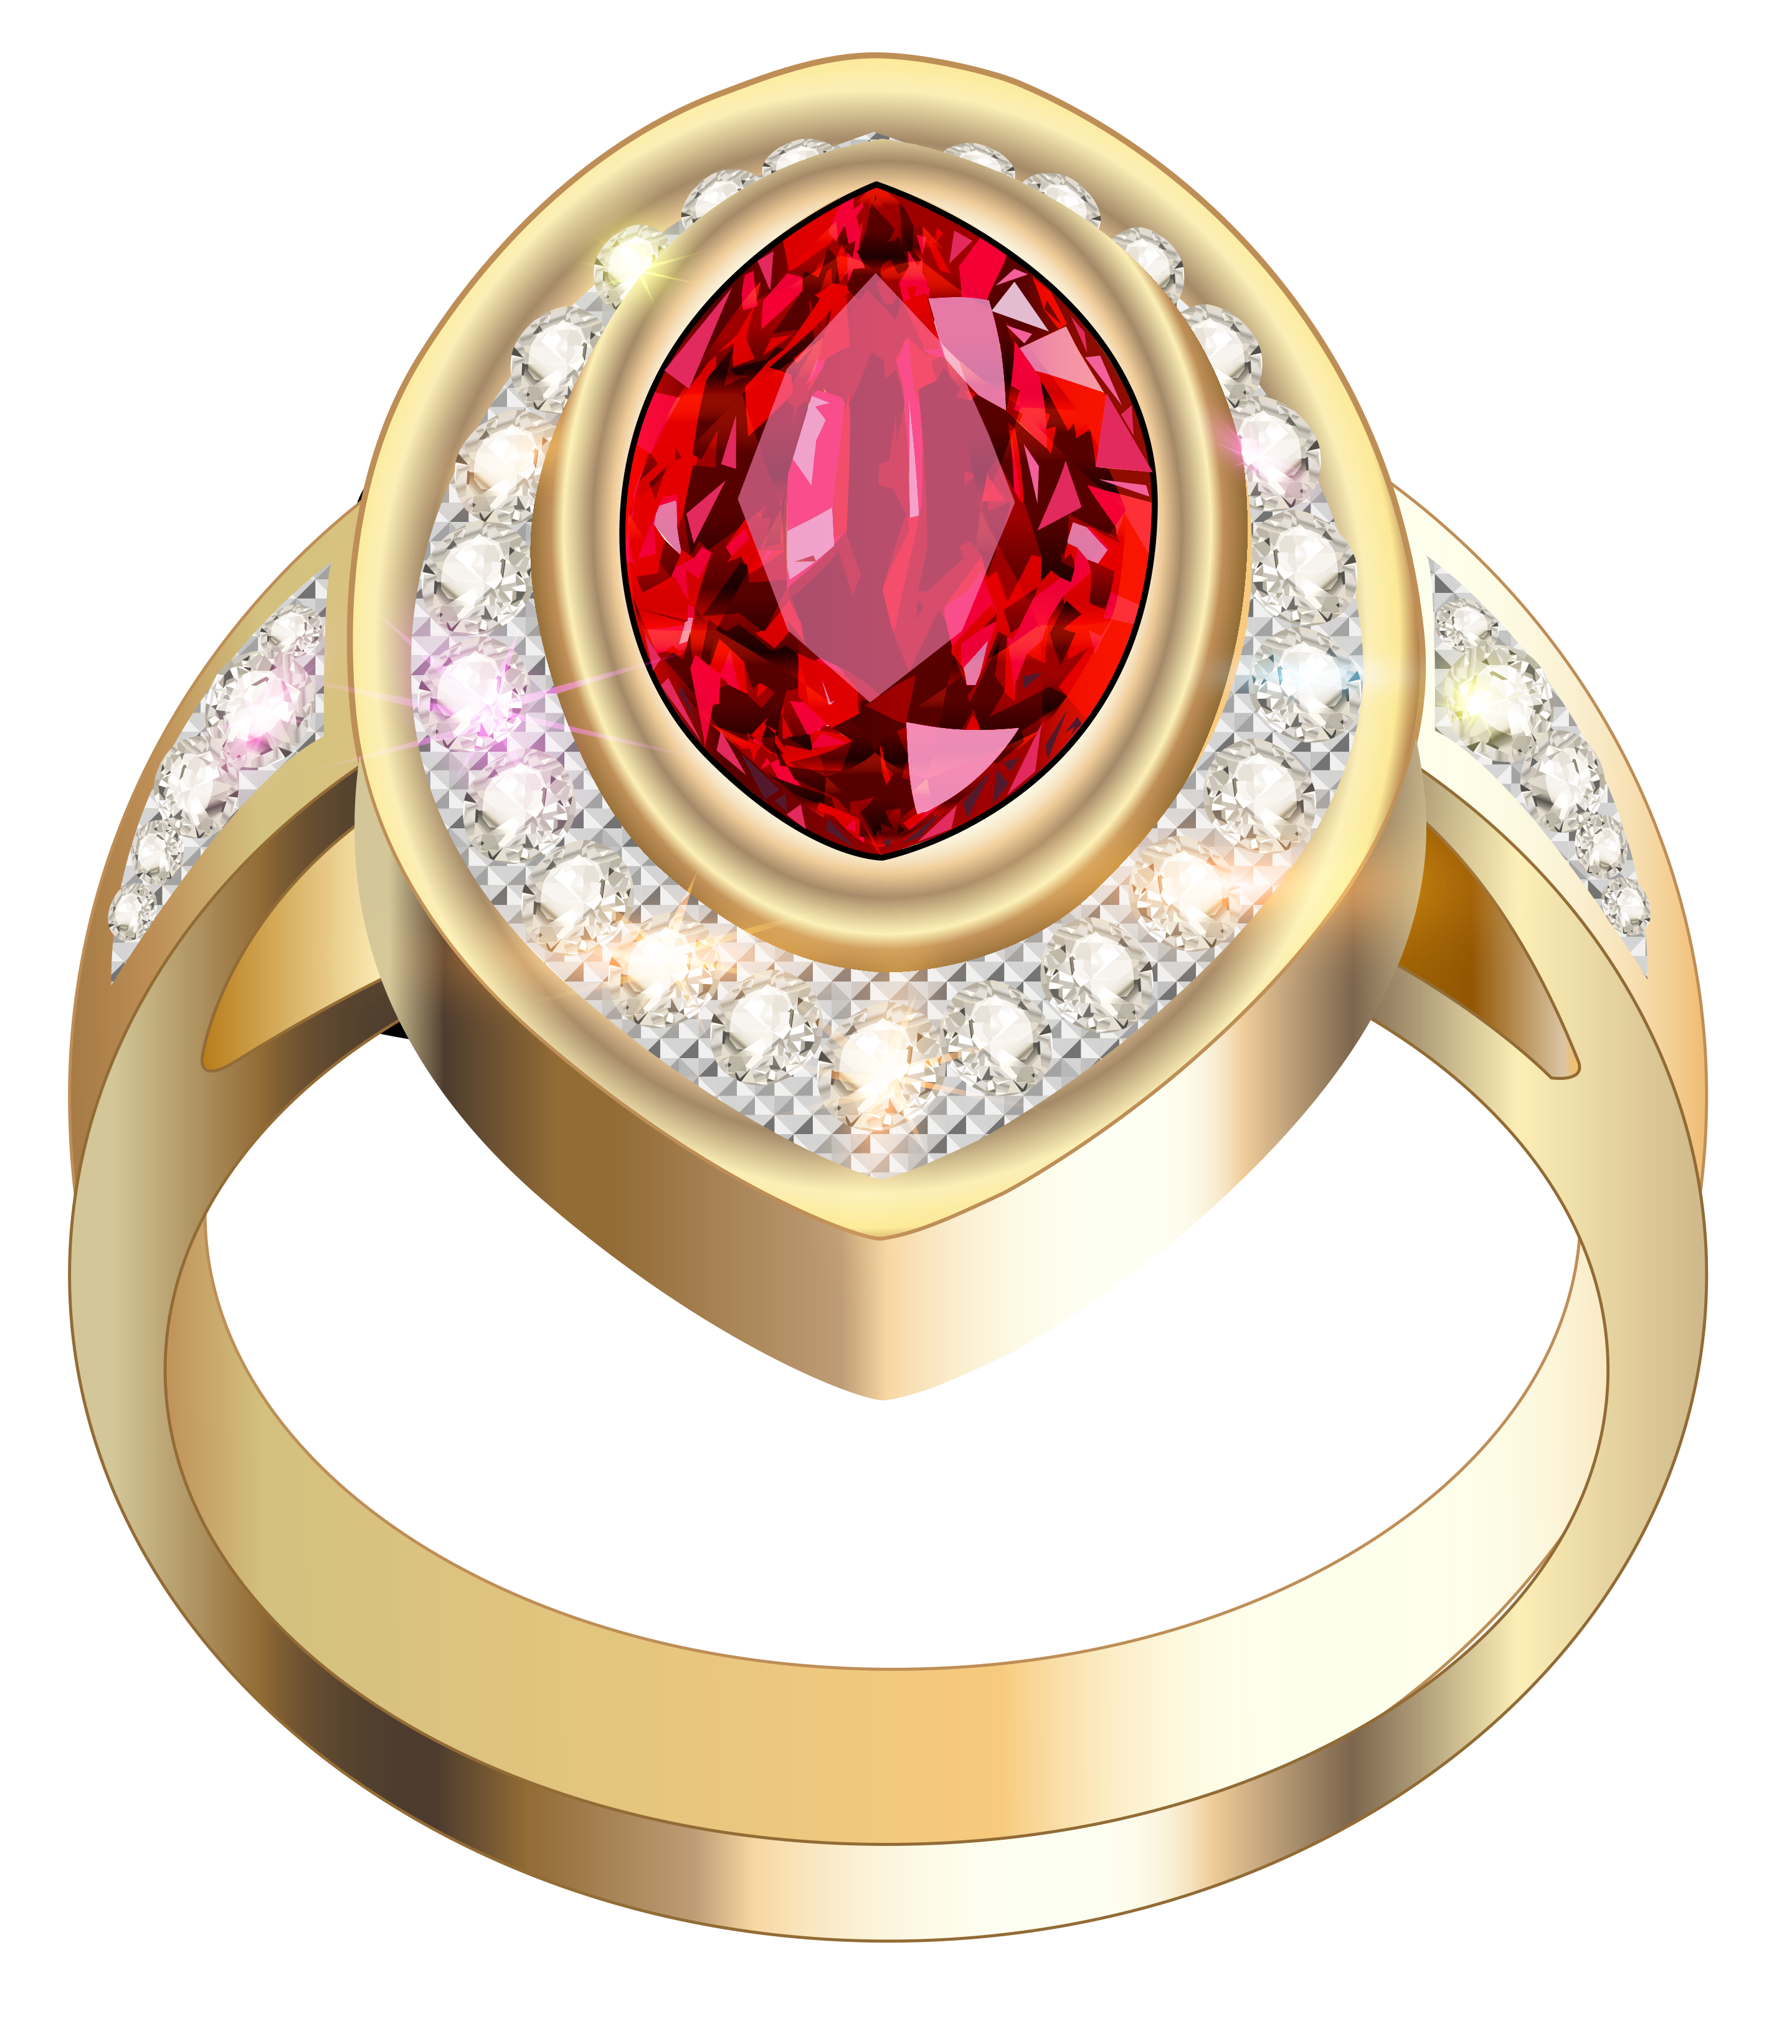 ring liai image courtesy - HD 2877×3282